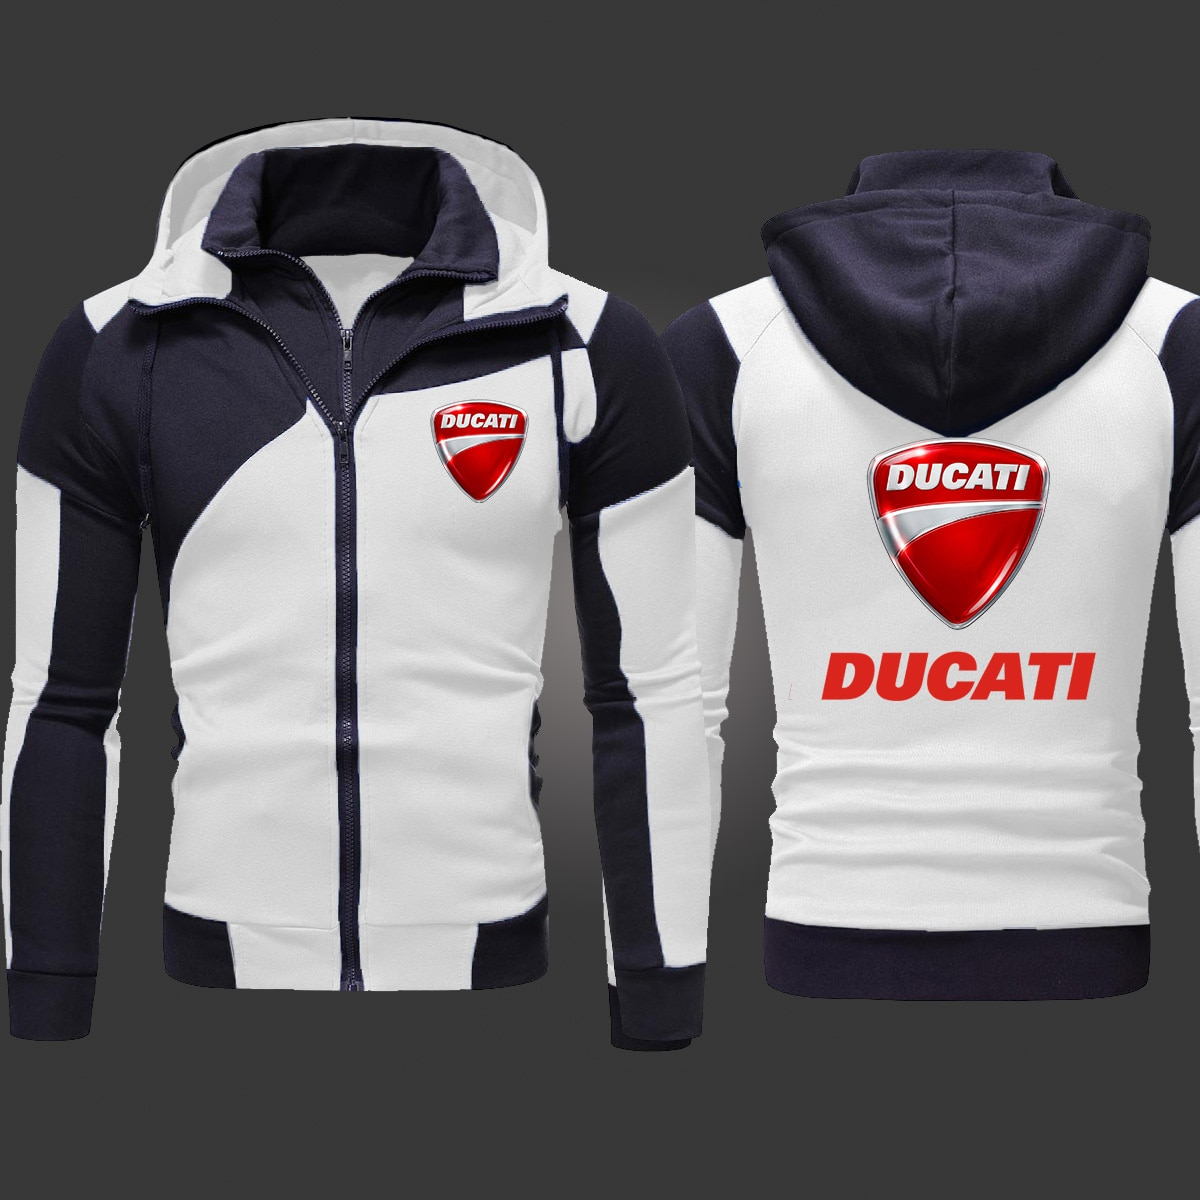 2021 New Ducati Motorcycle Men's Fashion Outwear Jacket Slim Fit Zipper Hooded High Quality Harajuku Hoody Casual Hoodies S-3XL